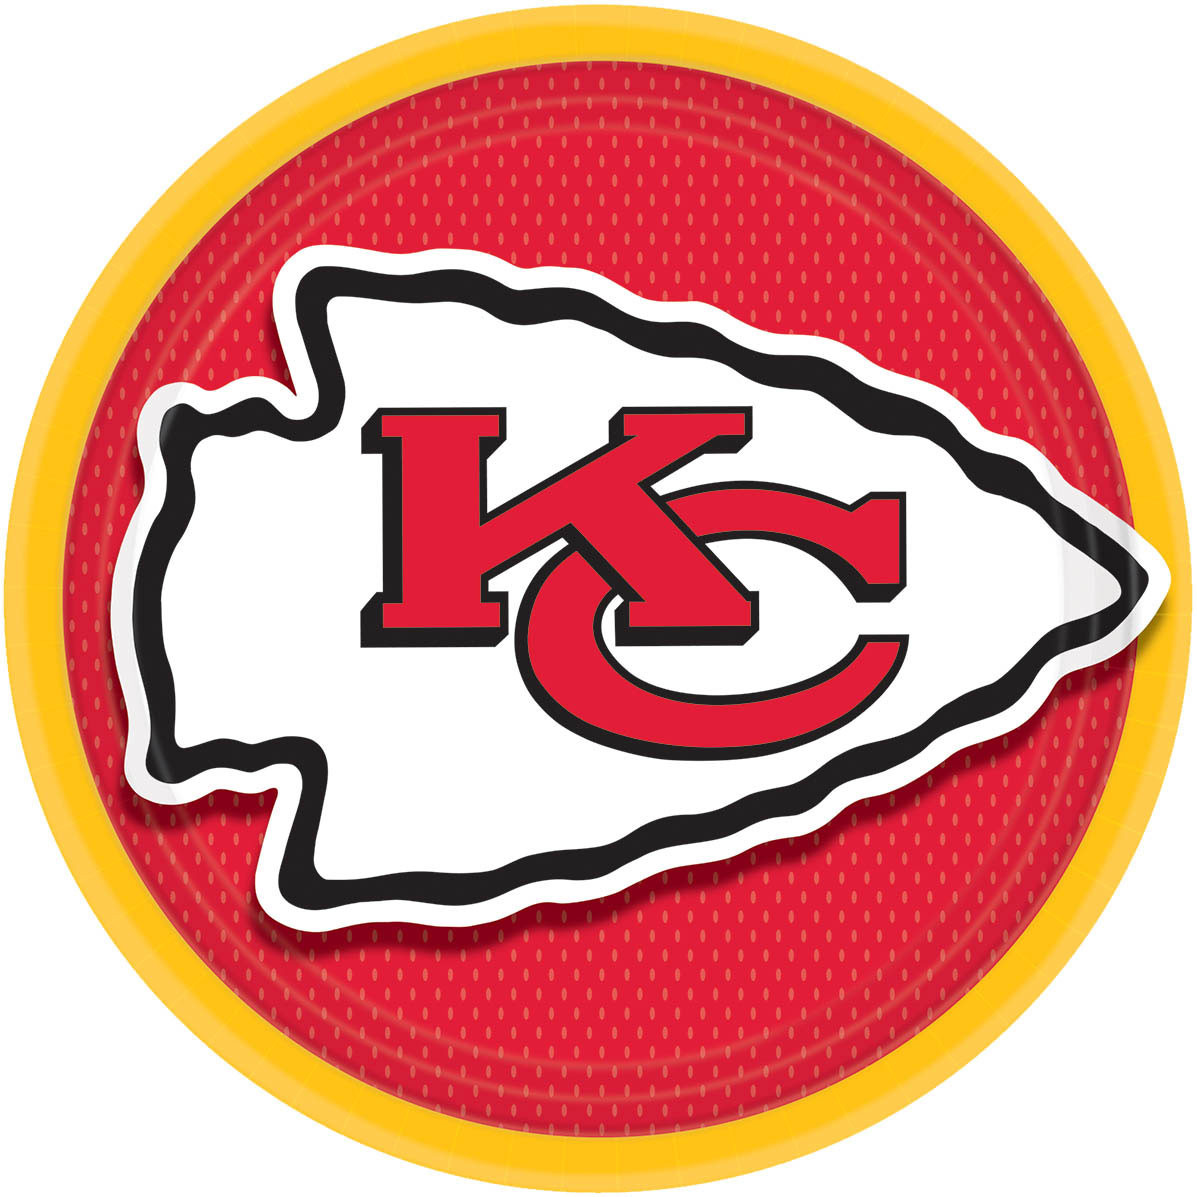 "Amscan Kansas City Chiefs NFL Football 9"" Dinner Plates, Red Yellow, 8 CT"